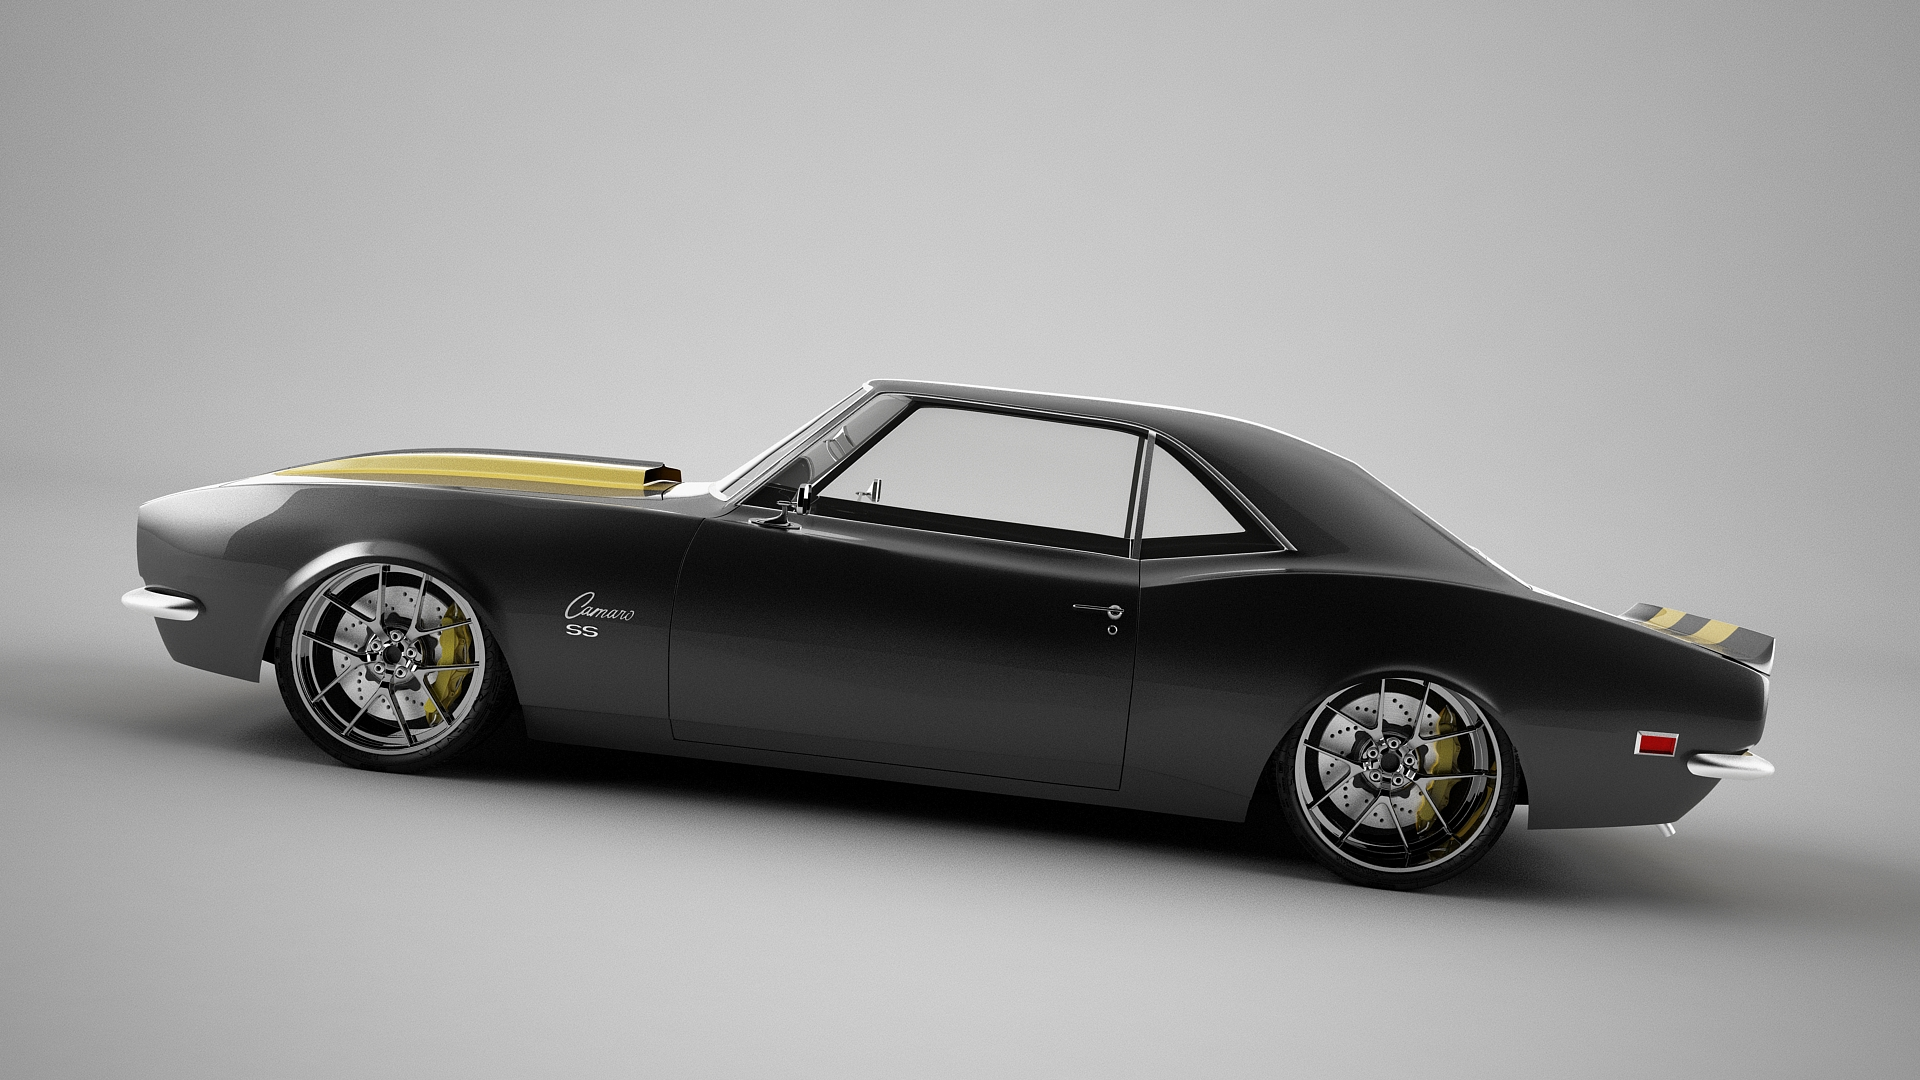 68 Camaro Wip By Bewsii On Deviantart